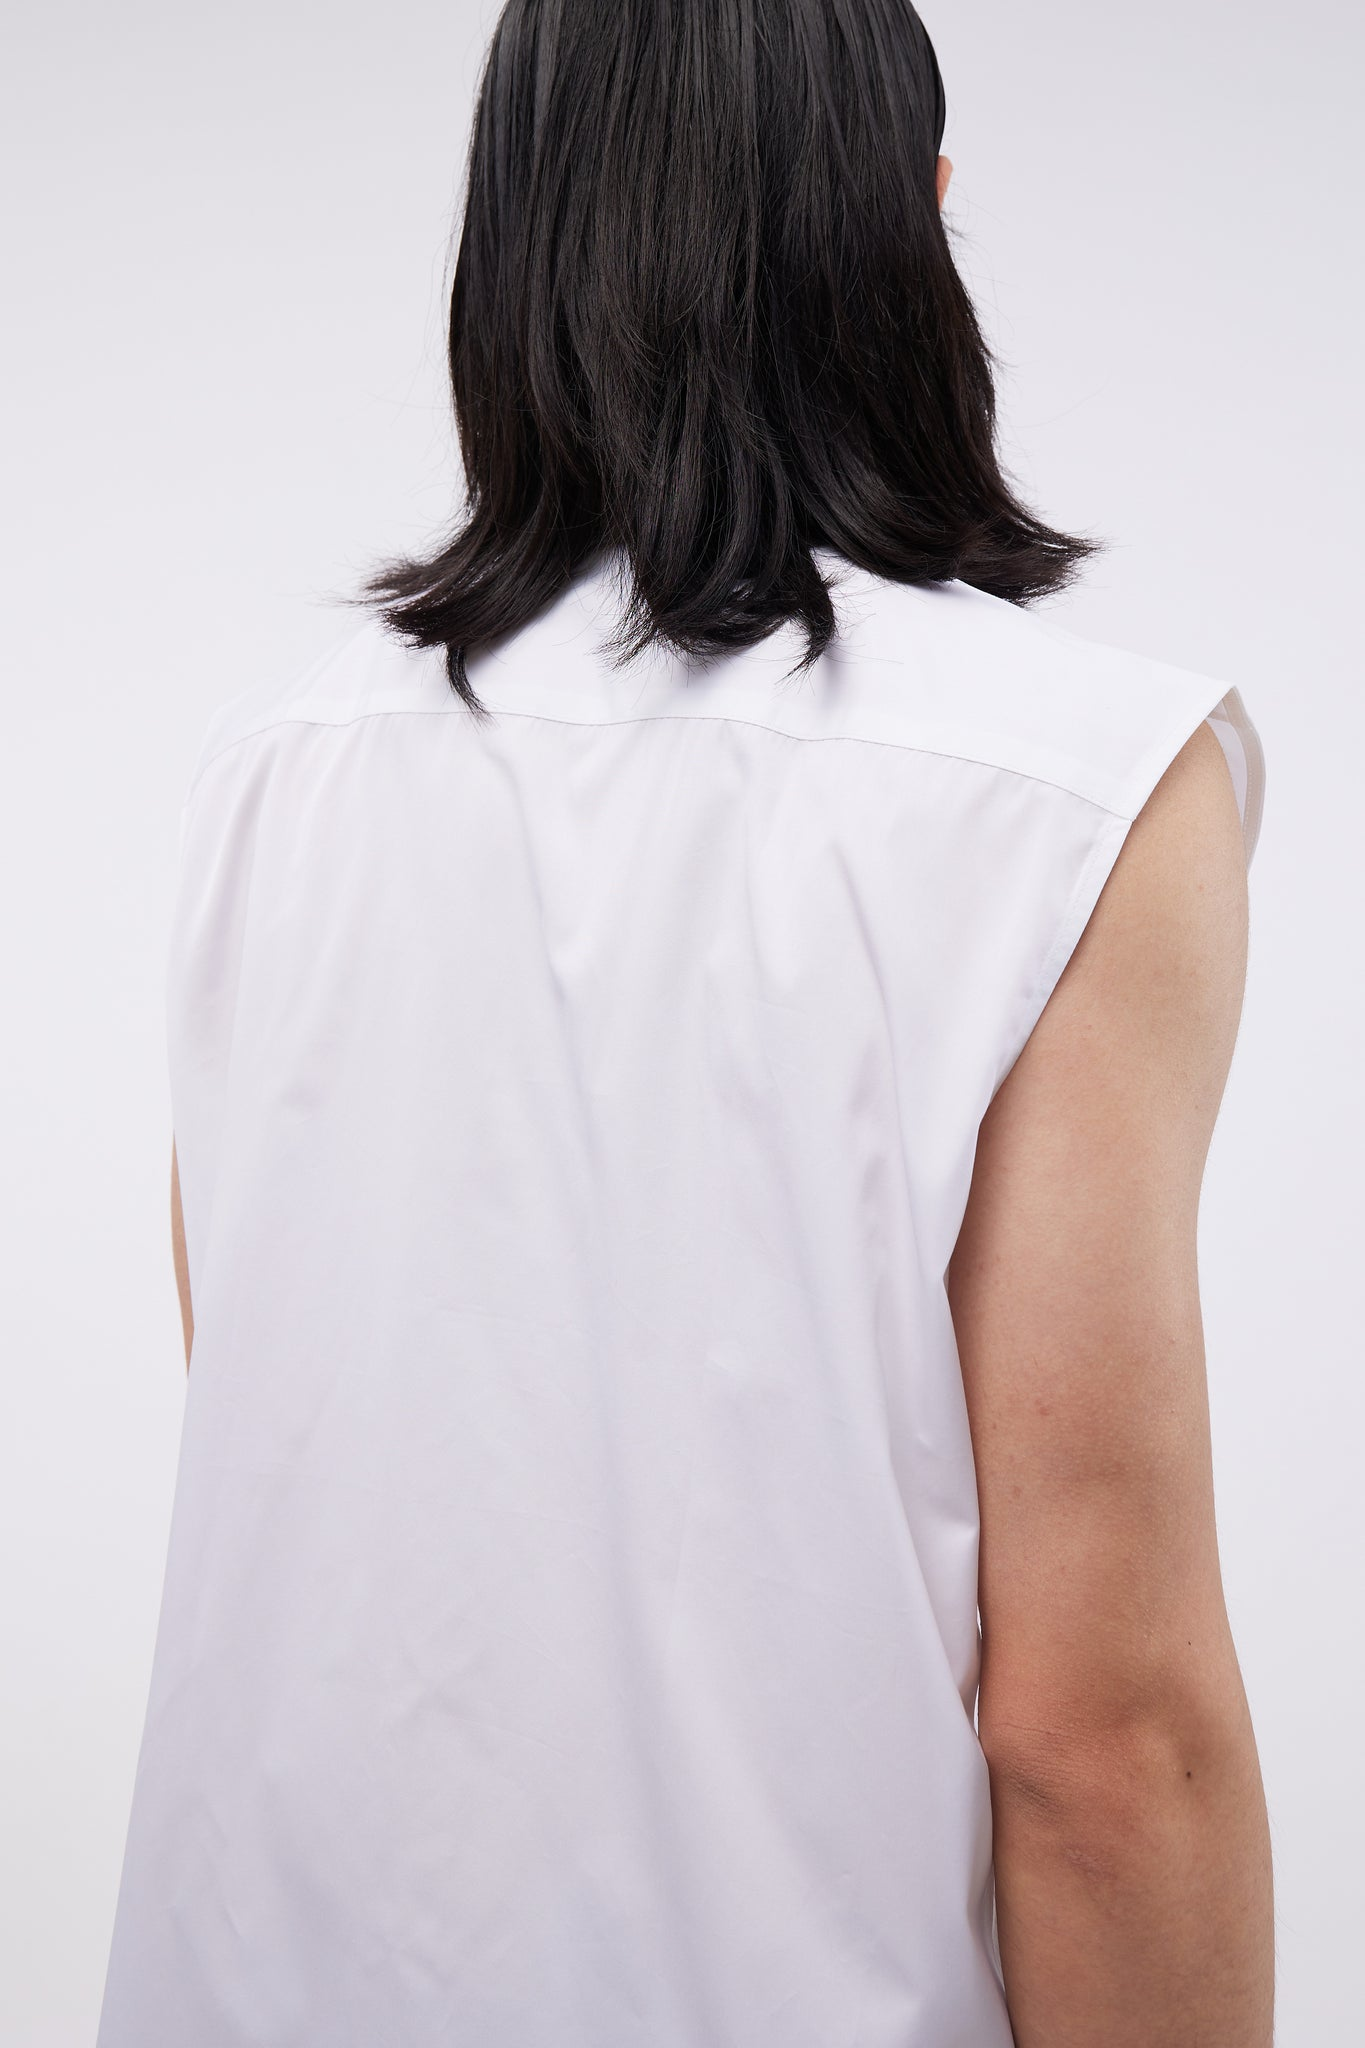 Sleeveless Shirt Light White